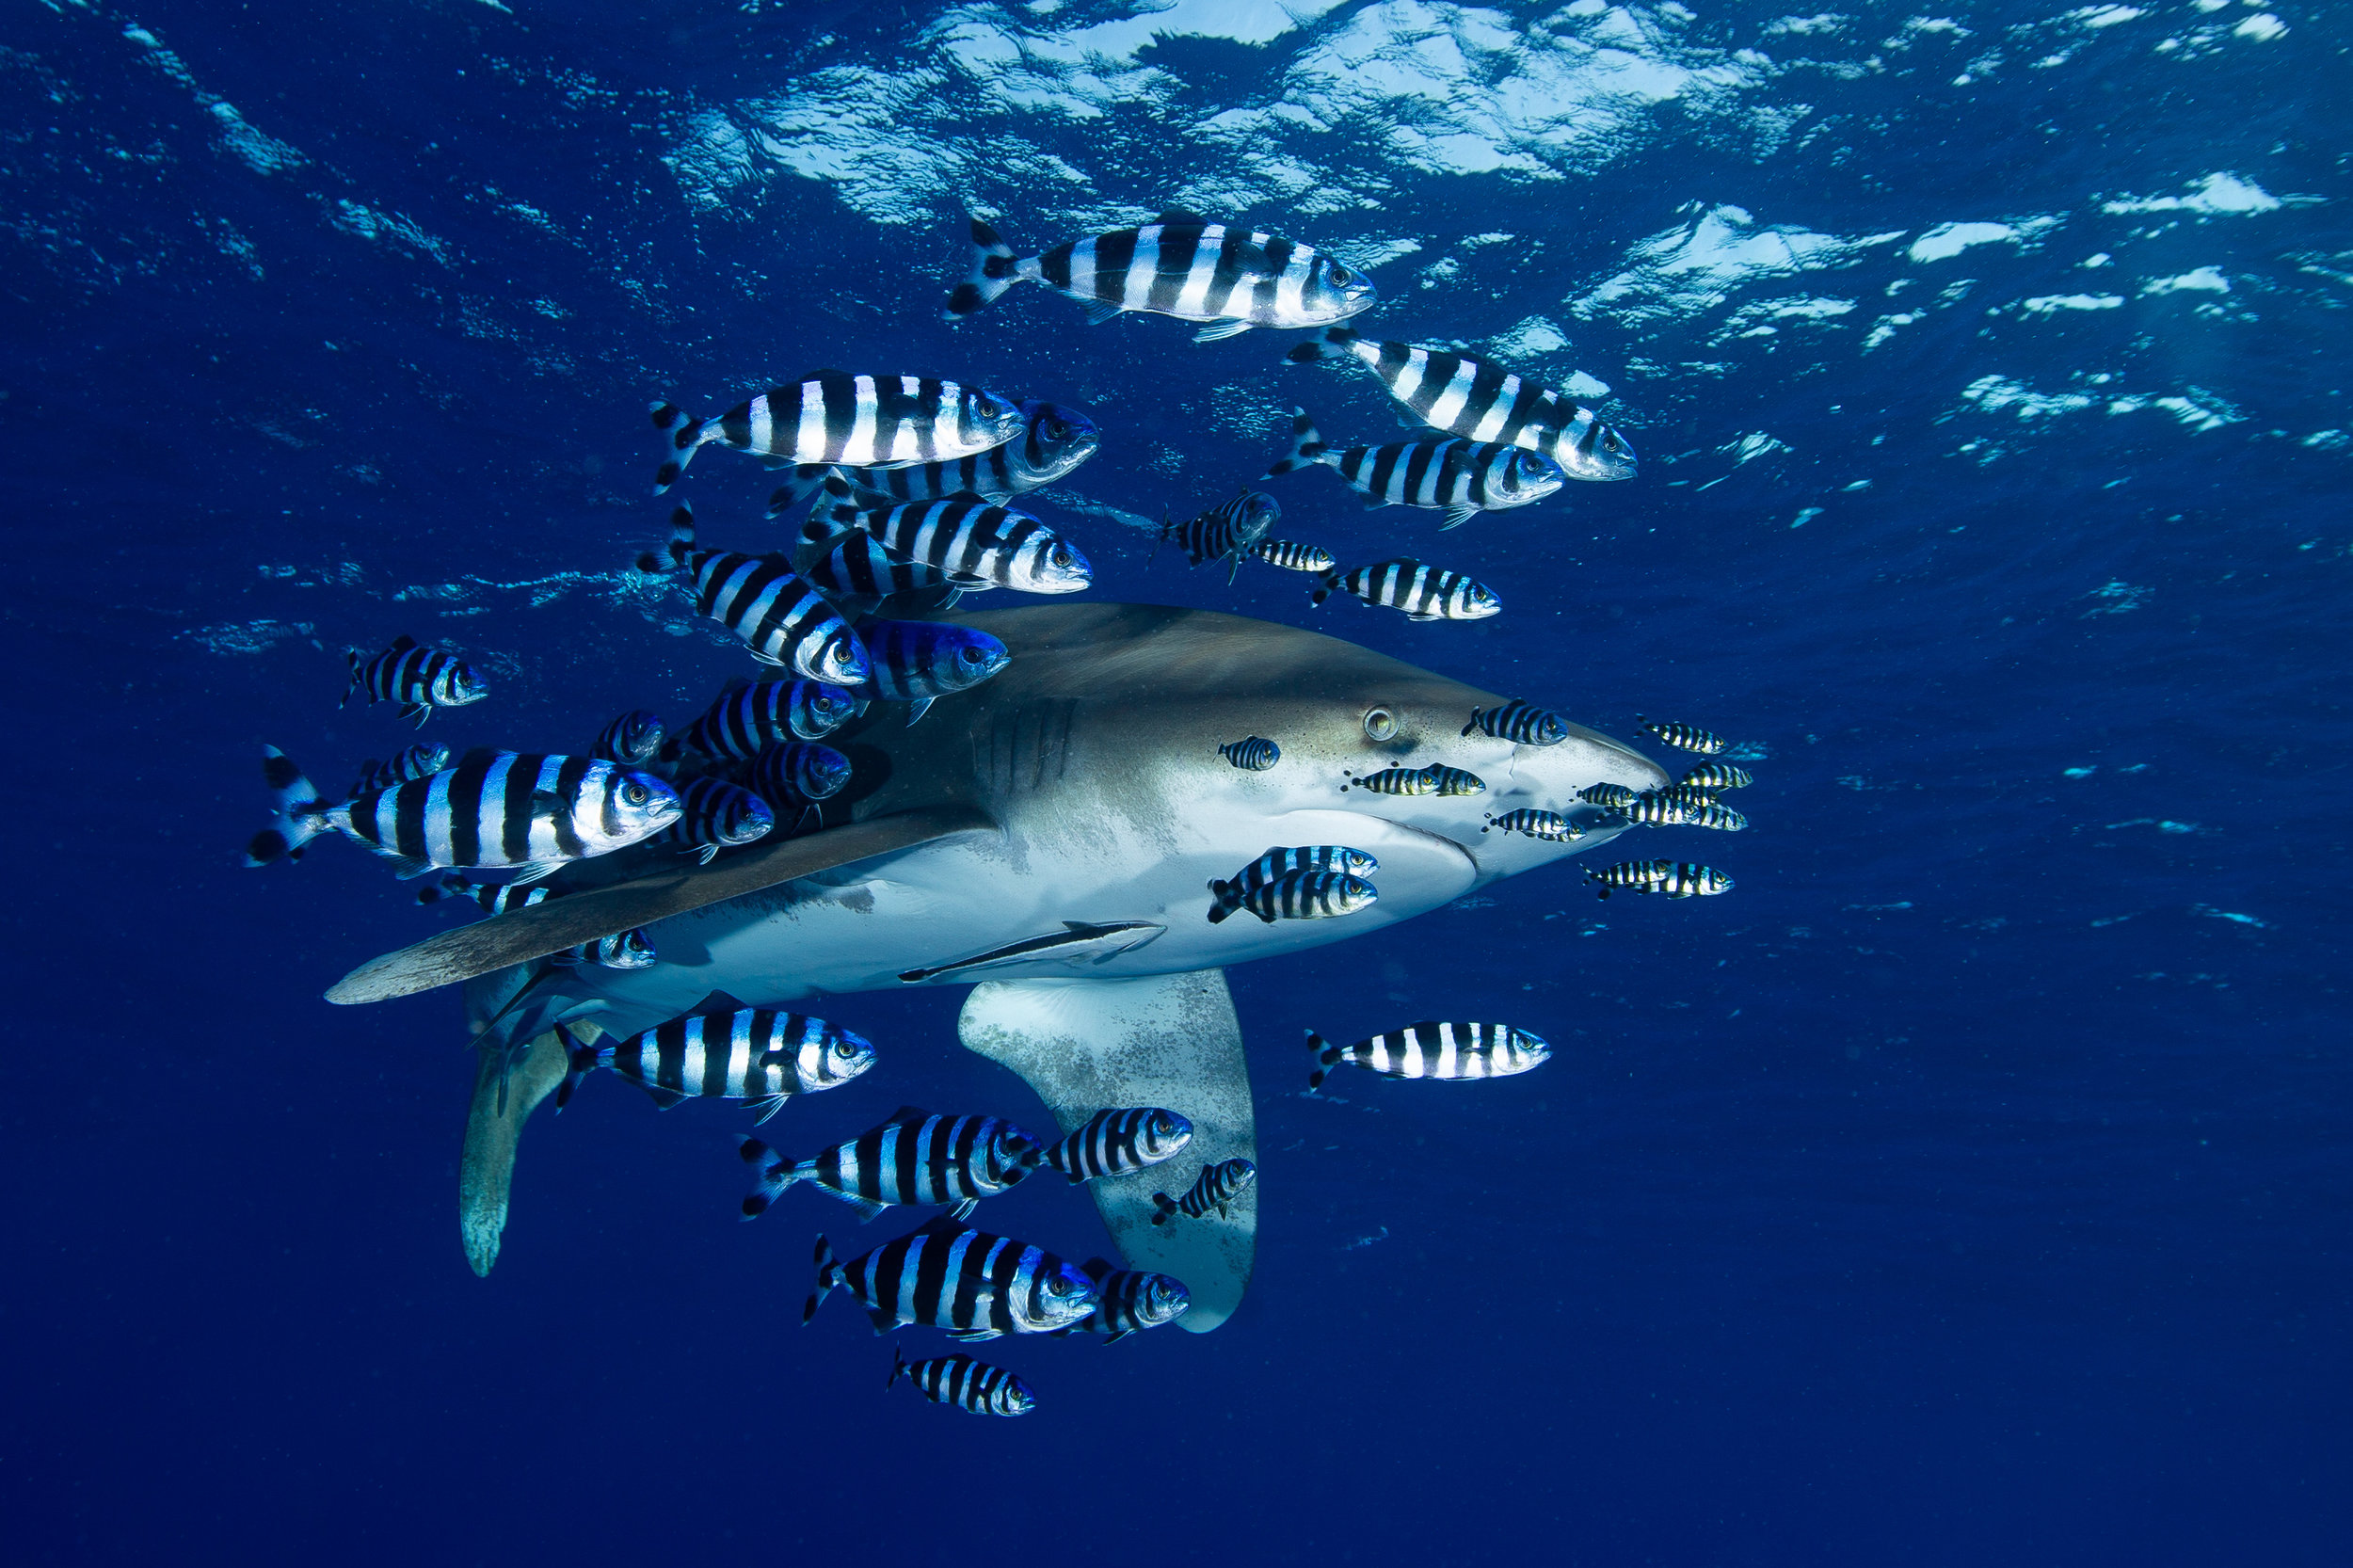 Oceanic White Tip, Elphinstone Reef, Red Sea - Egypt - Wild Earth Expeditions